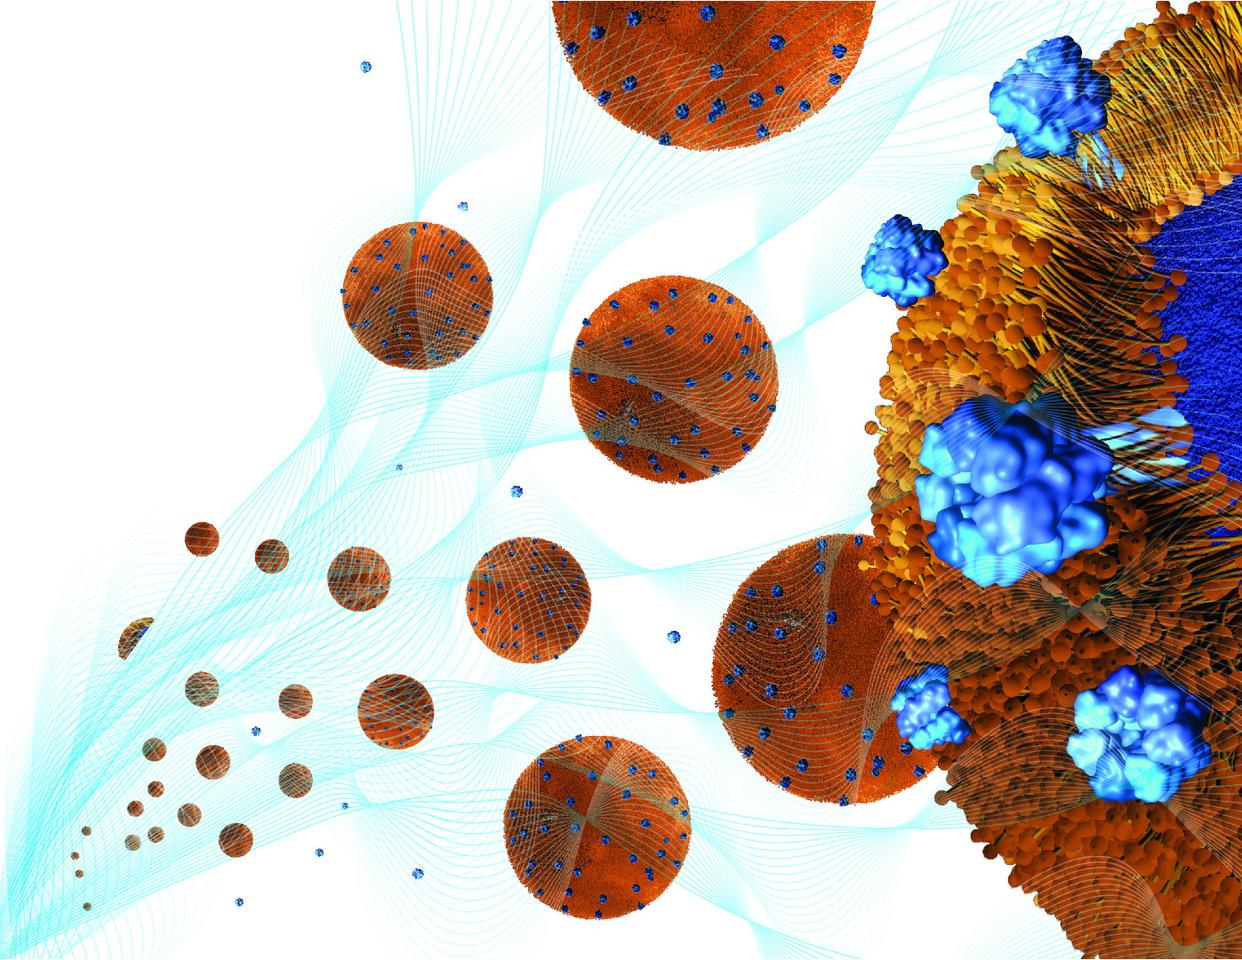 Toxin-absorbing nanoparticles are loaded into a holding gel to make a nanosponge-hydrogel, which can potentially treat local bacterial infections